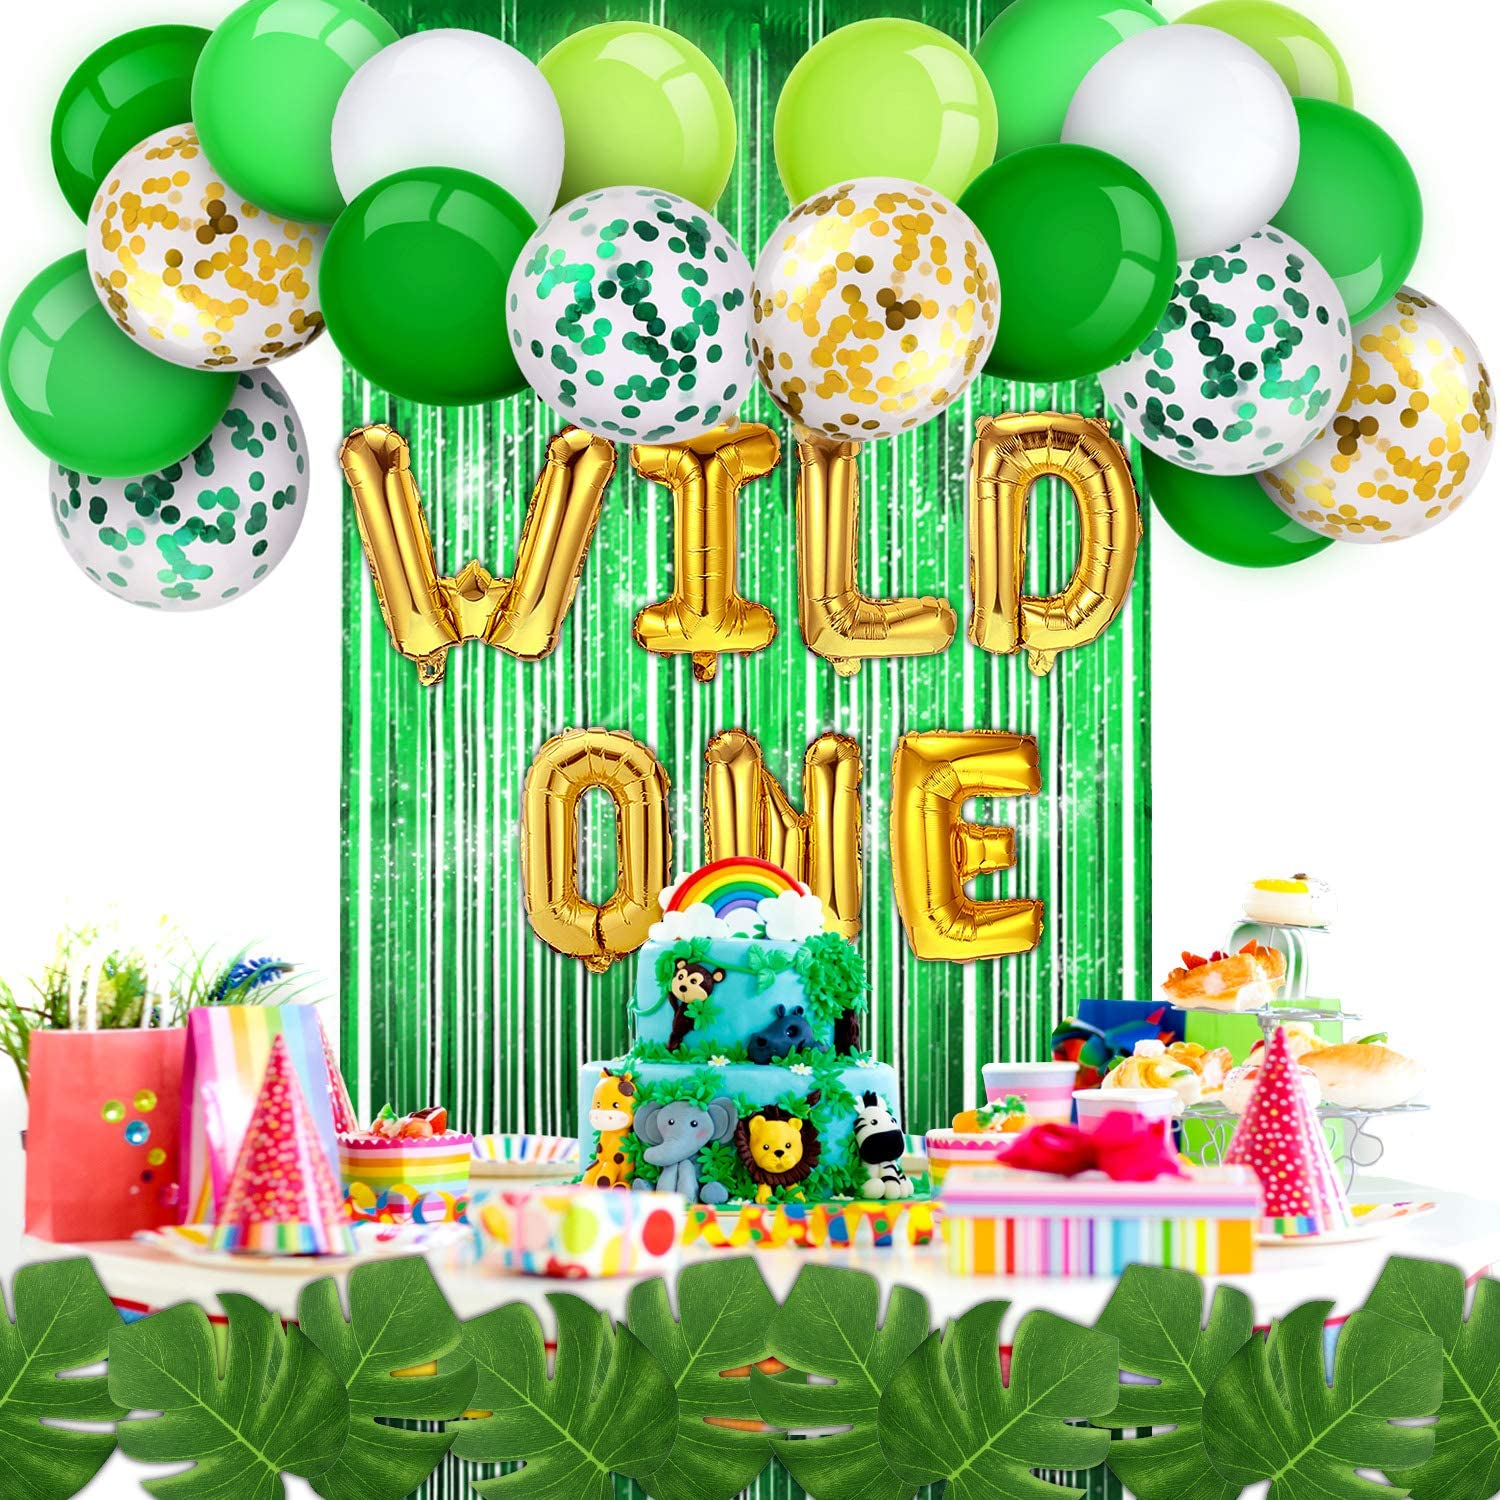 Wild One Balloons include Green Foil Fringe Curtain Palm Leaves Latex Balloons Confetti Balloons Adhesive Dots and Strip Tape for Party Supplies Birthday Decorations Set